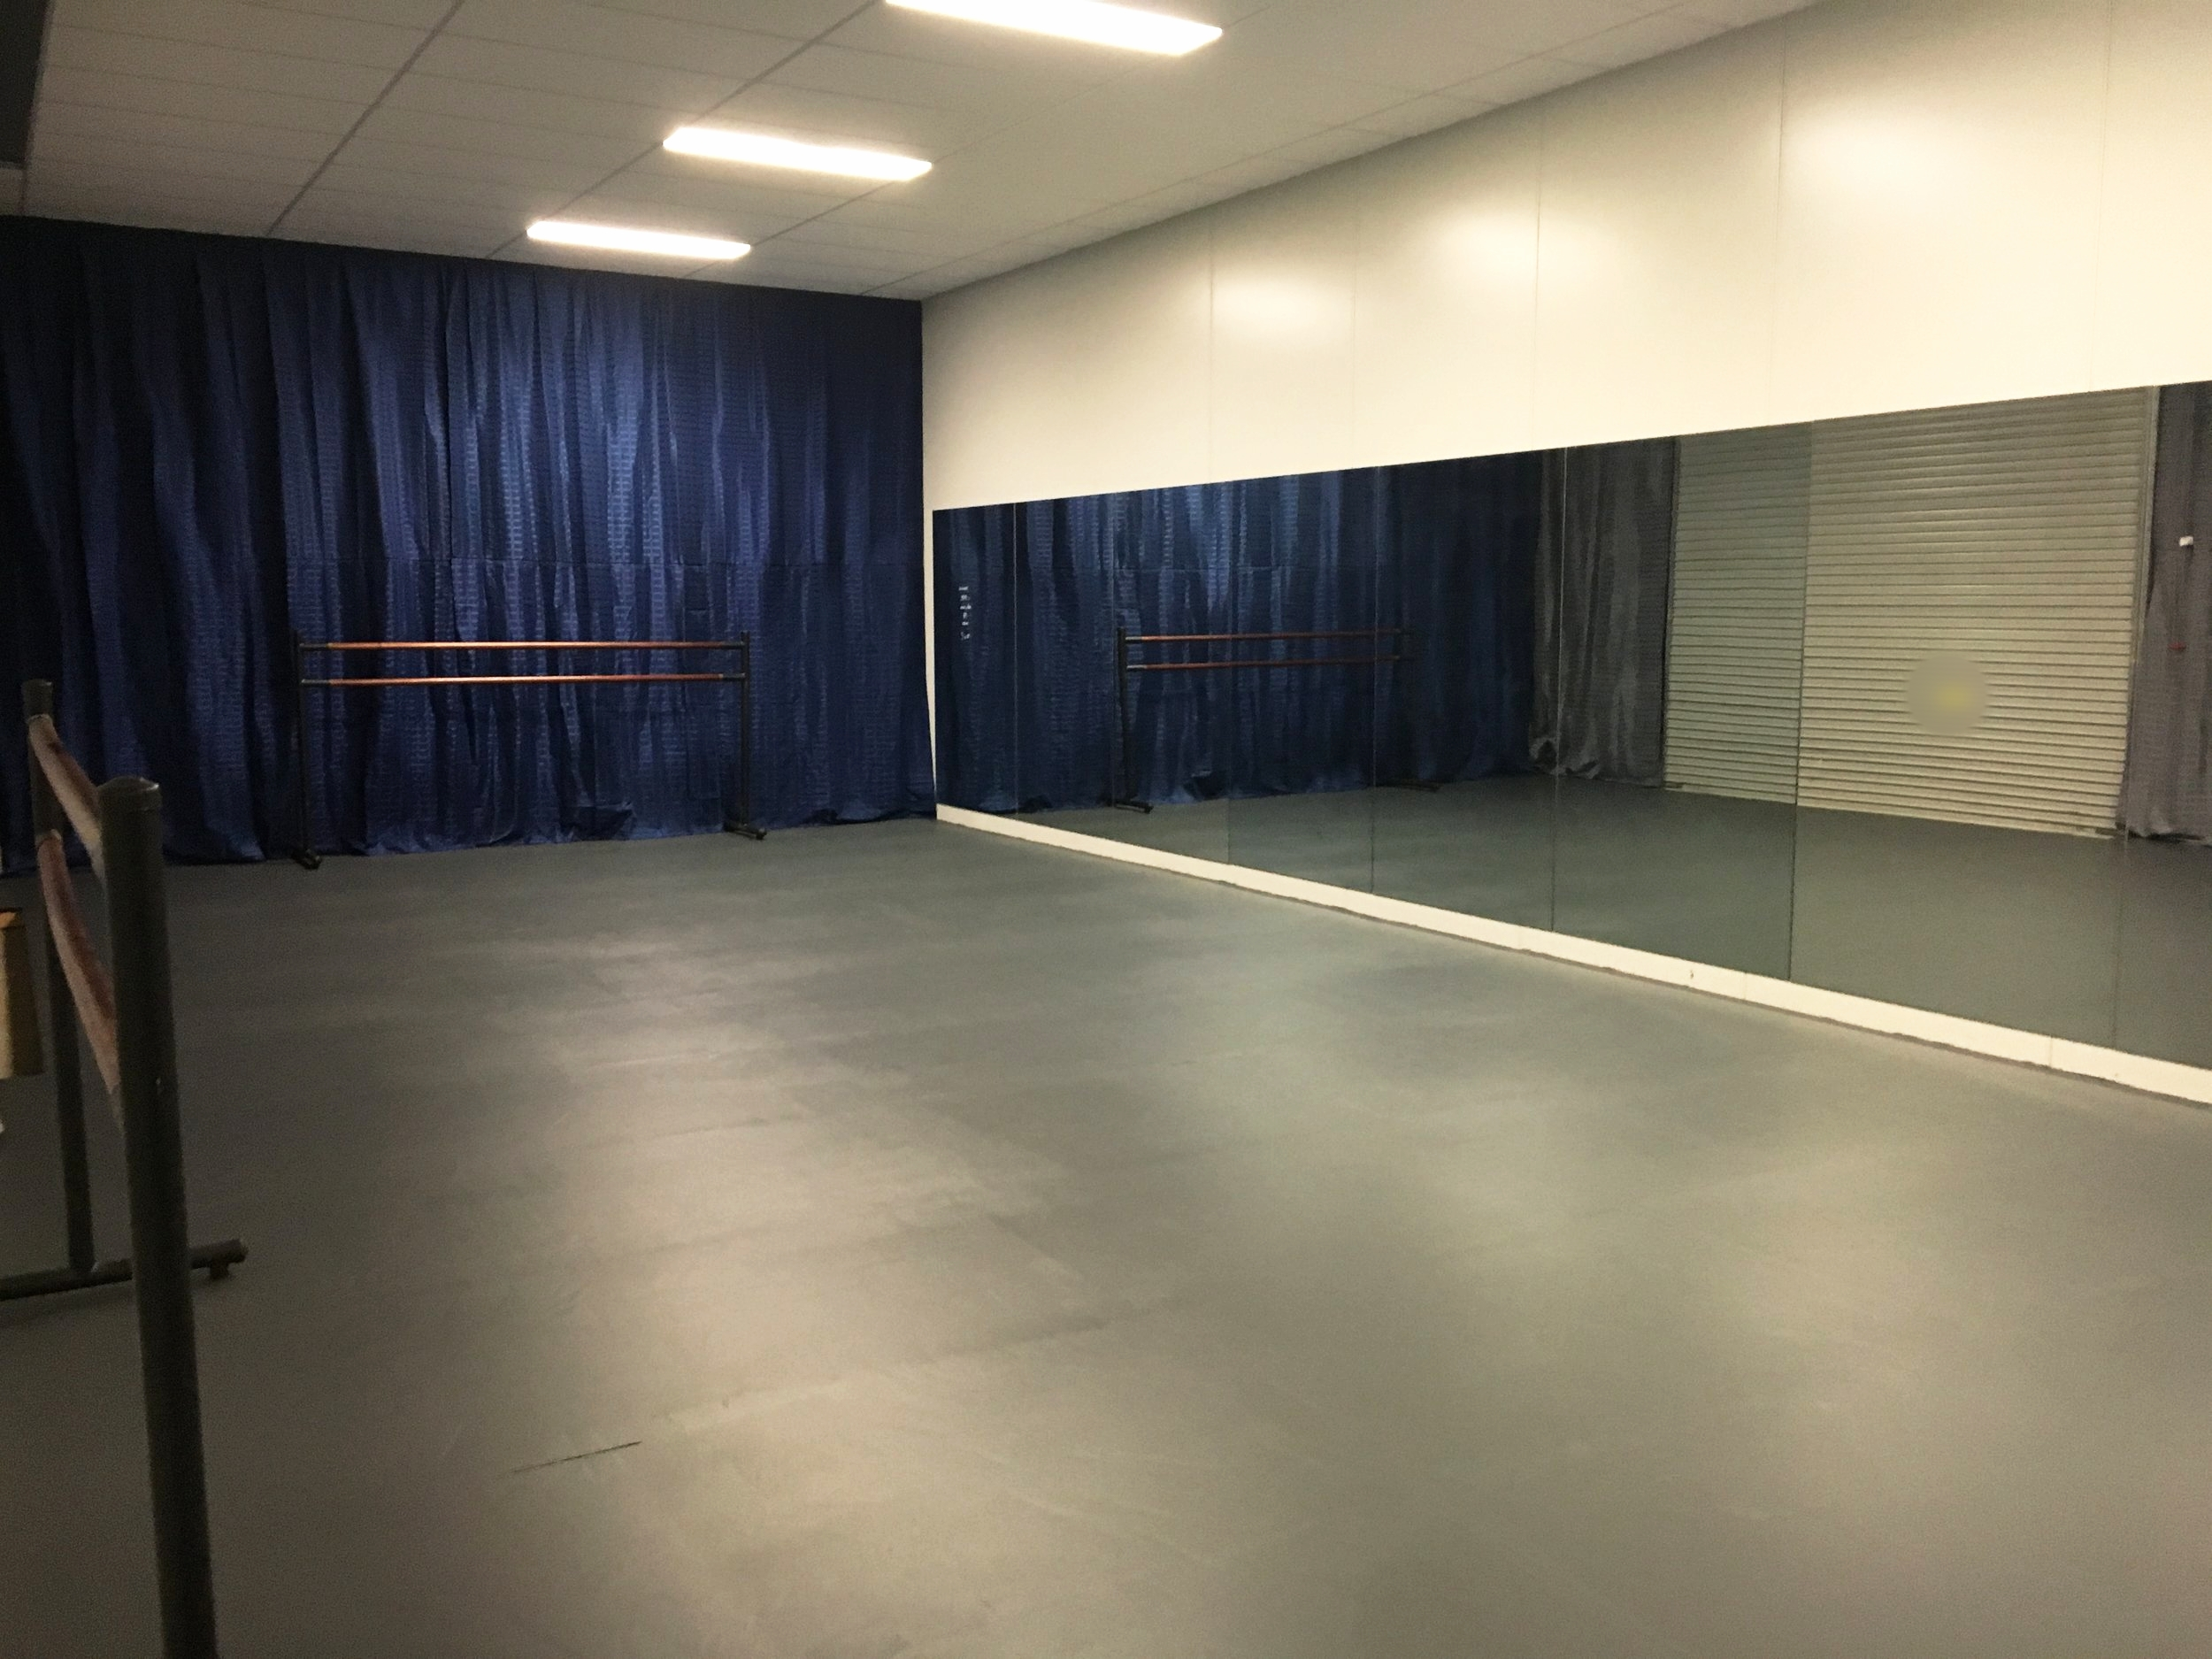 '42nd St' - Tap and Ballet Studio has speciality flooring, ballet barres and full length mirrors. $35 an hour.